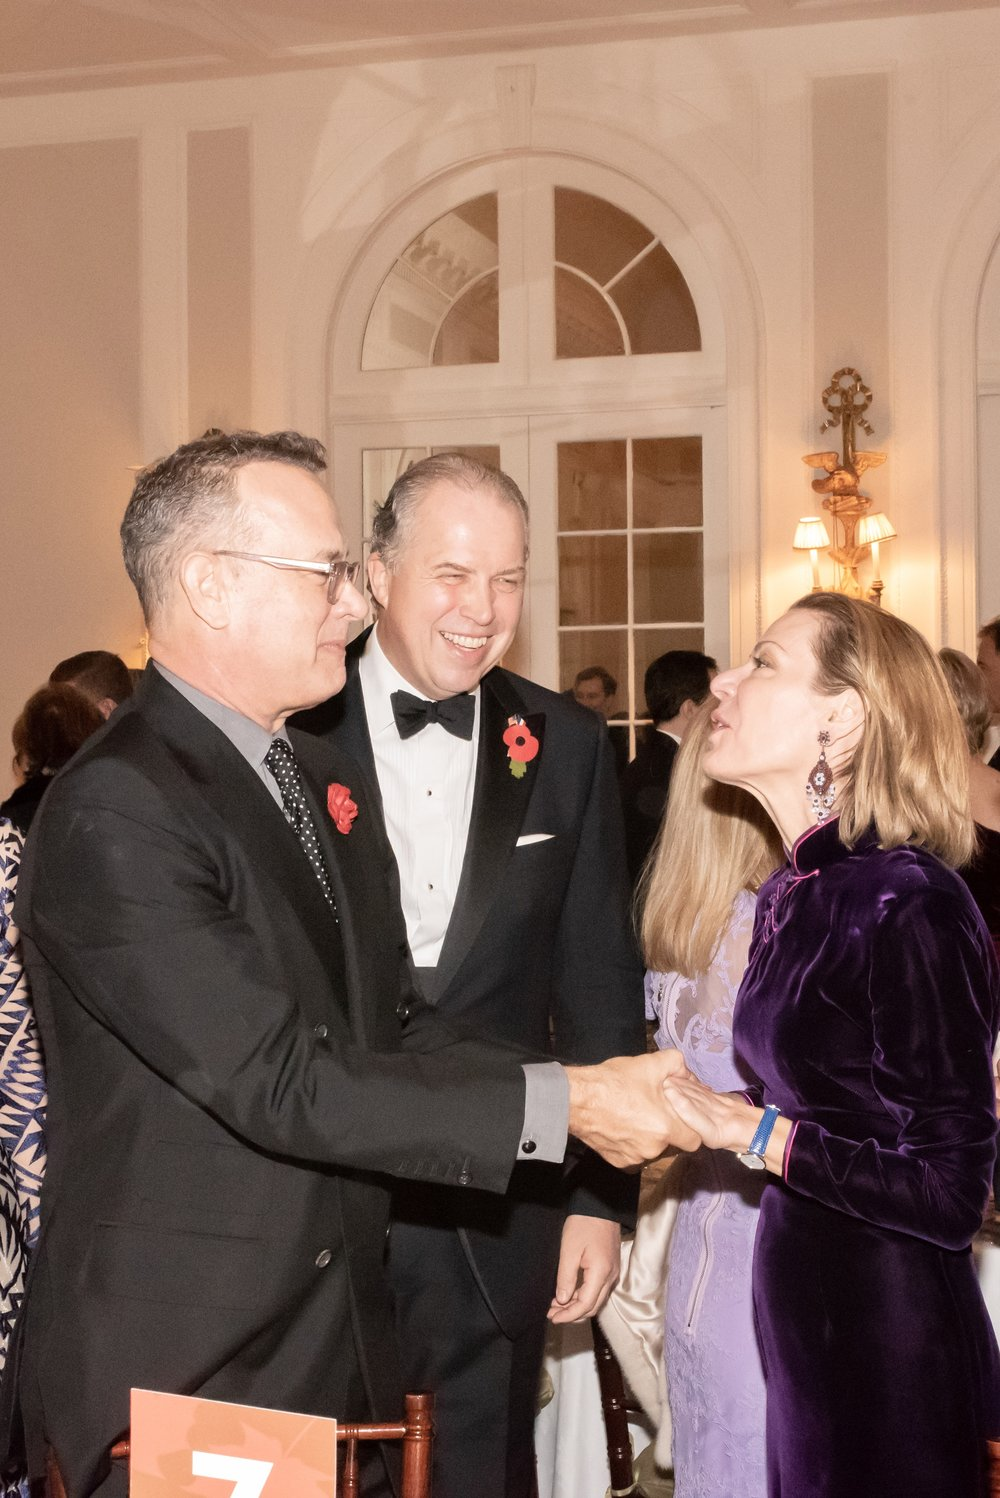 Tom Hanks, James Gerard, Emanuela Gerard at Annual Gala Dinner of American Friends of Blérancourt  at Private Club in New York on 11/09/2018 (photo by Annie Watt Agency / Sipa USA